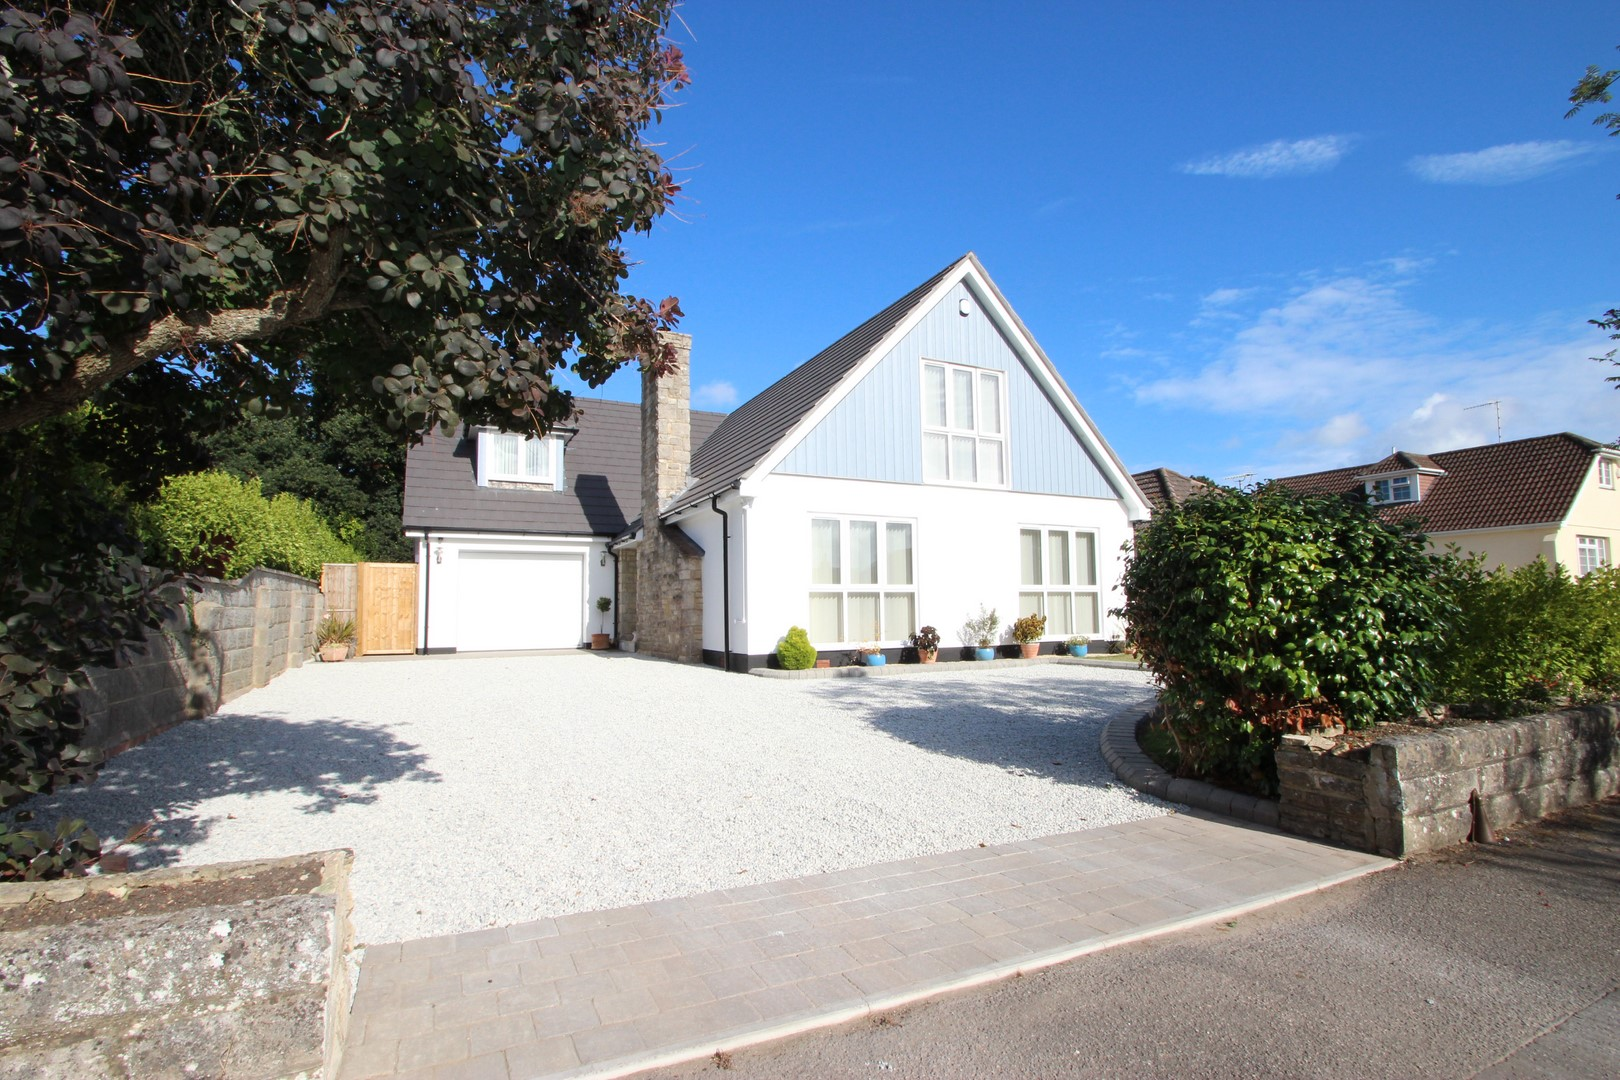 4 Bedroom Chalet in Friars Cliff